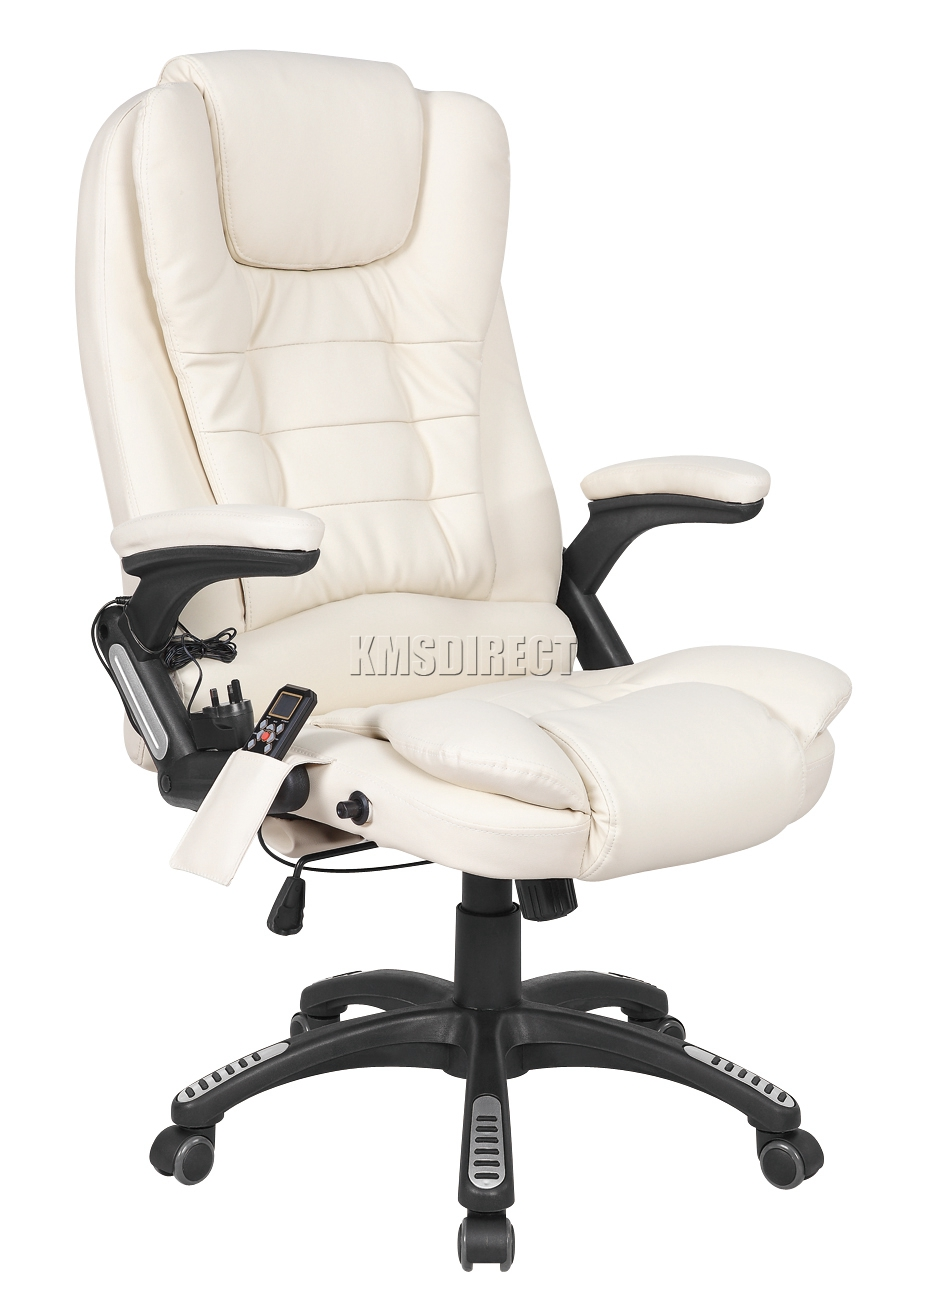 details about westwood cream luxury leather 6 point massage office computer chair reclining